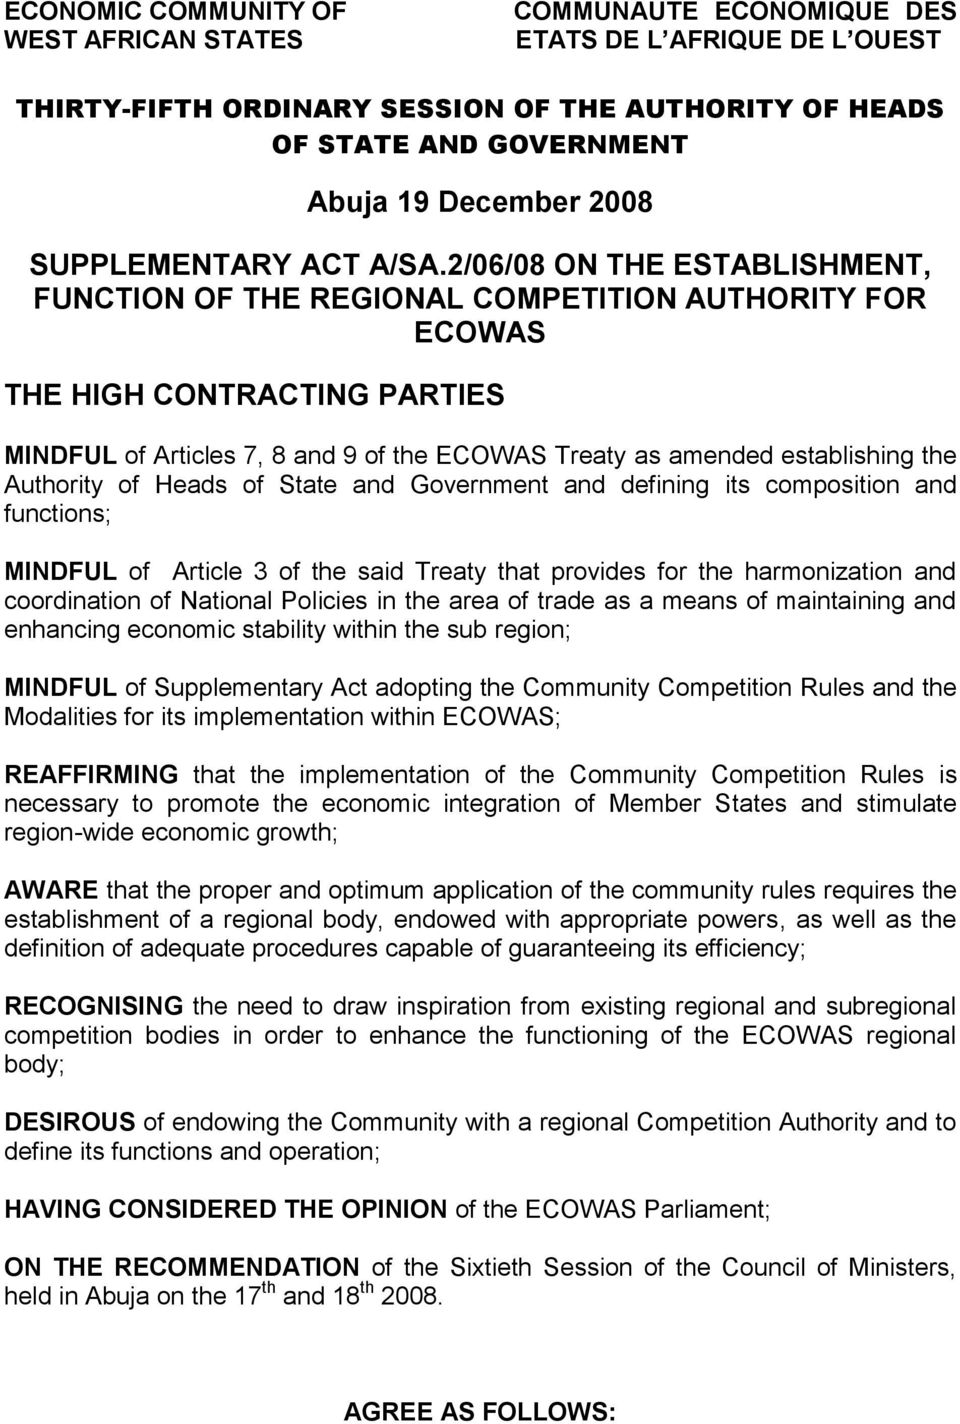 2/06/08 ON THE ESTABLISHMENT, FUNCTION OF THE REGIONAL COMPETITION AUTHORITY FOR ECOWAS THE HIGH CONTRACTING PARTIES MINDFUL of Articles 7, 8 and 9 of the ECOWAS Treaty as amended establishing the